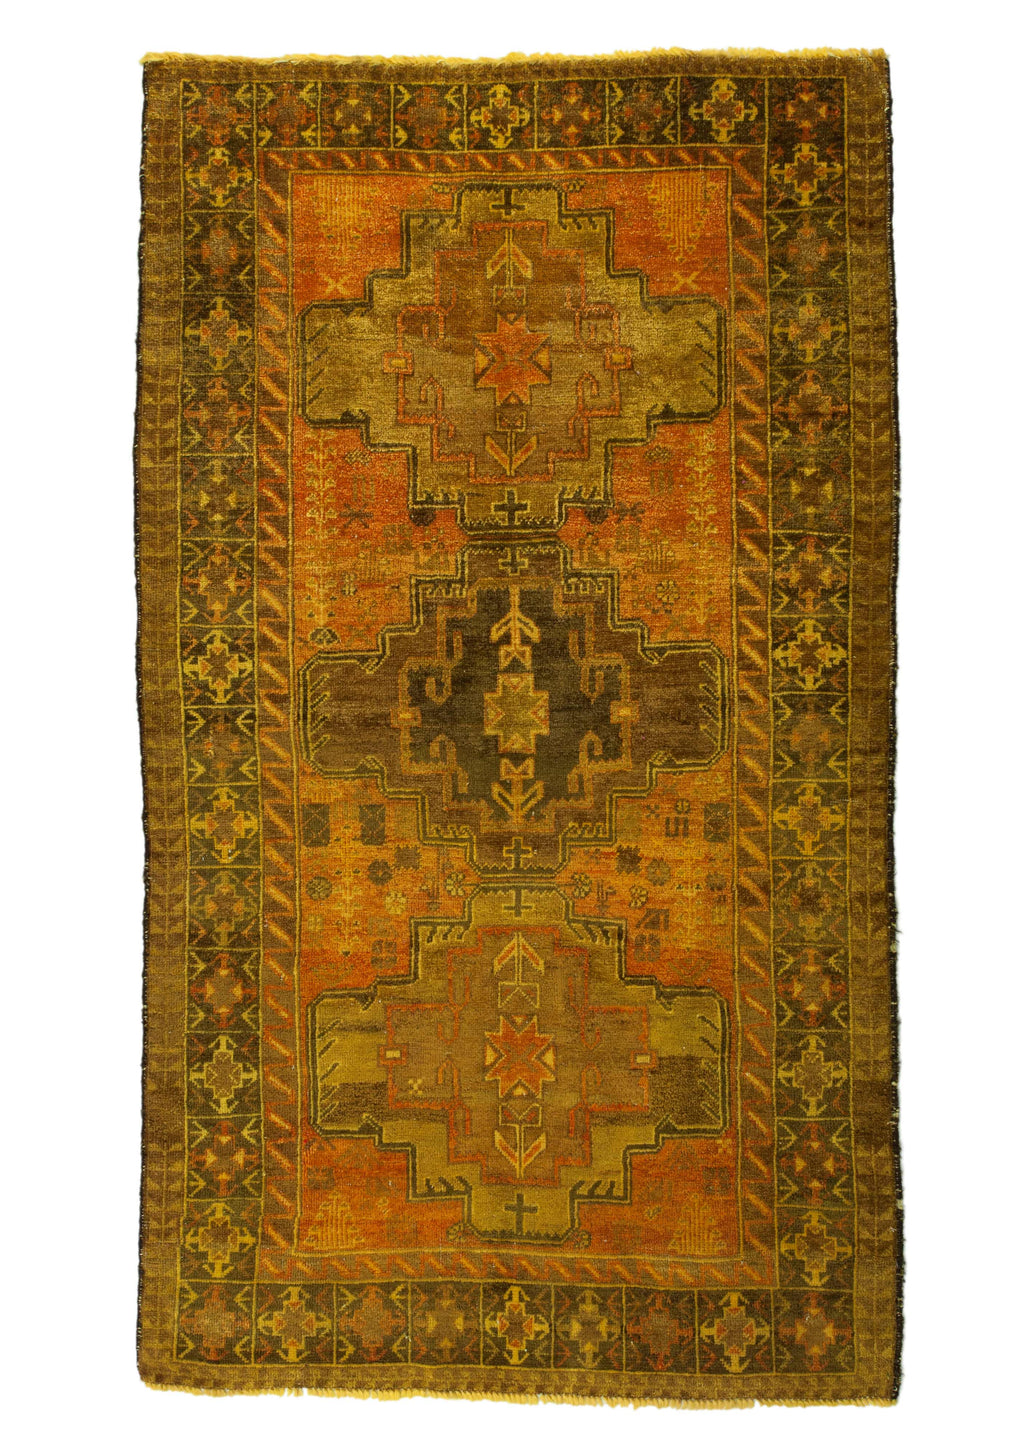 4x6 Overdyed Vintage Tribal Gold Rug 2515 - west of hudson